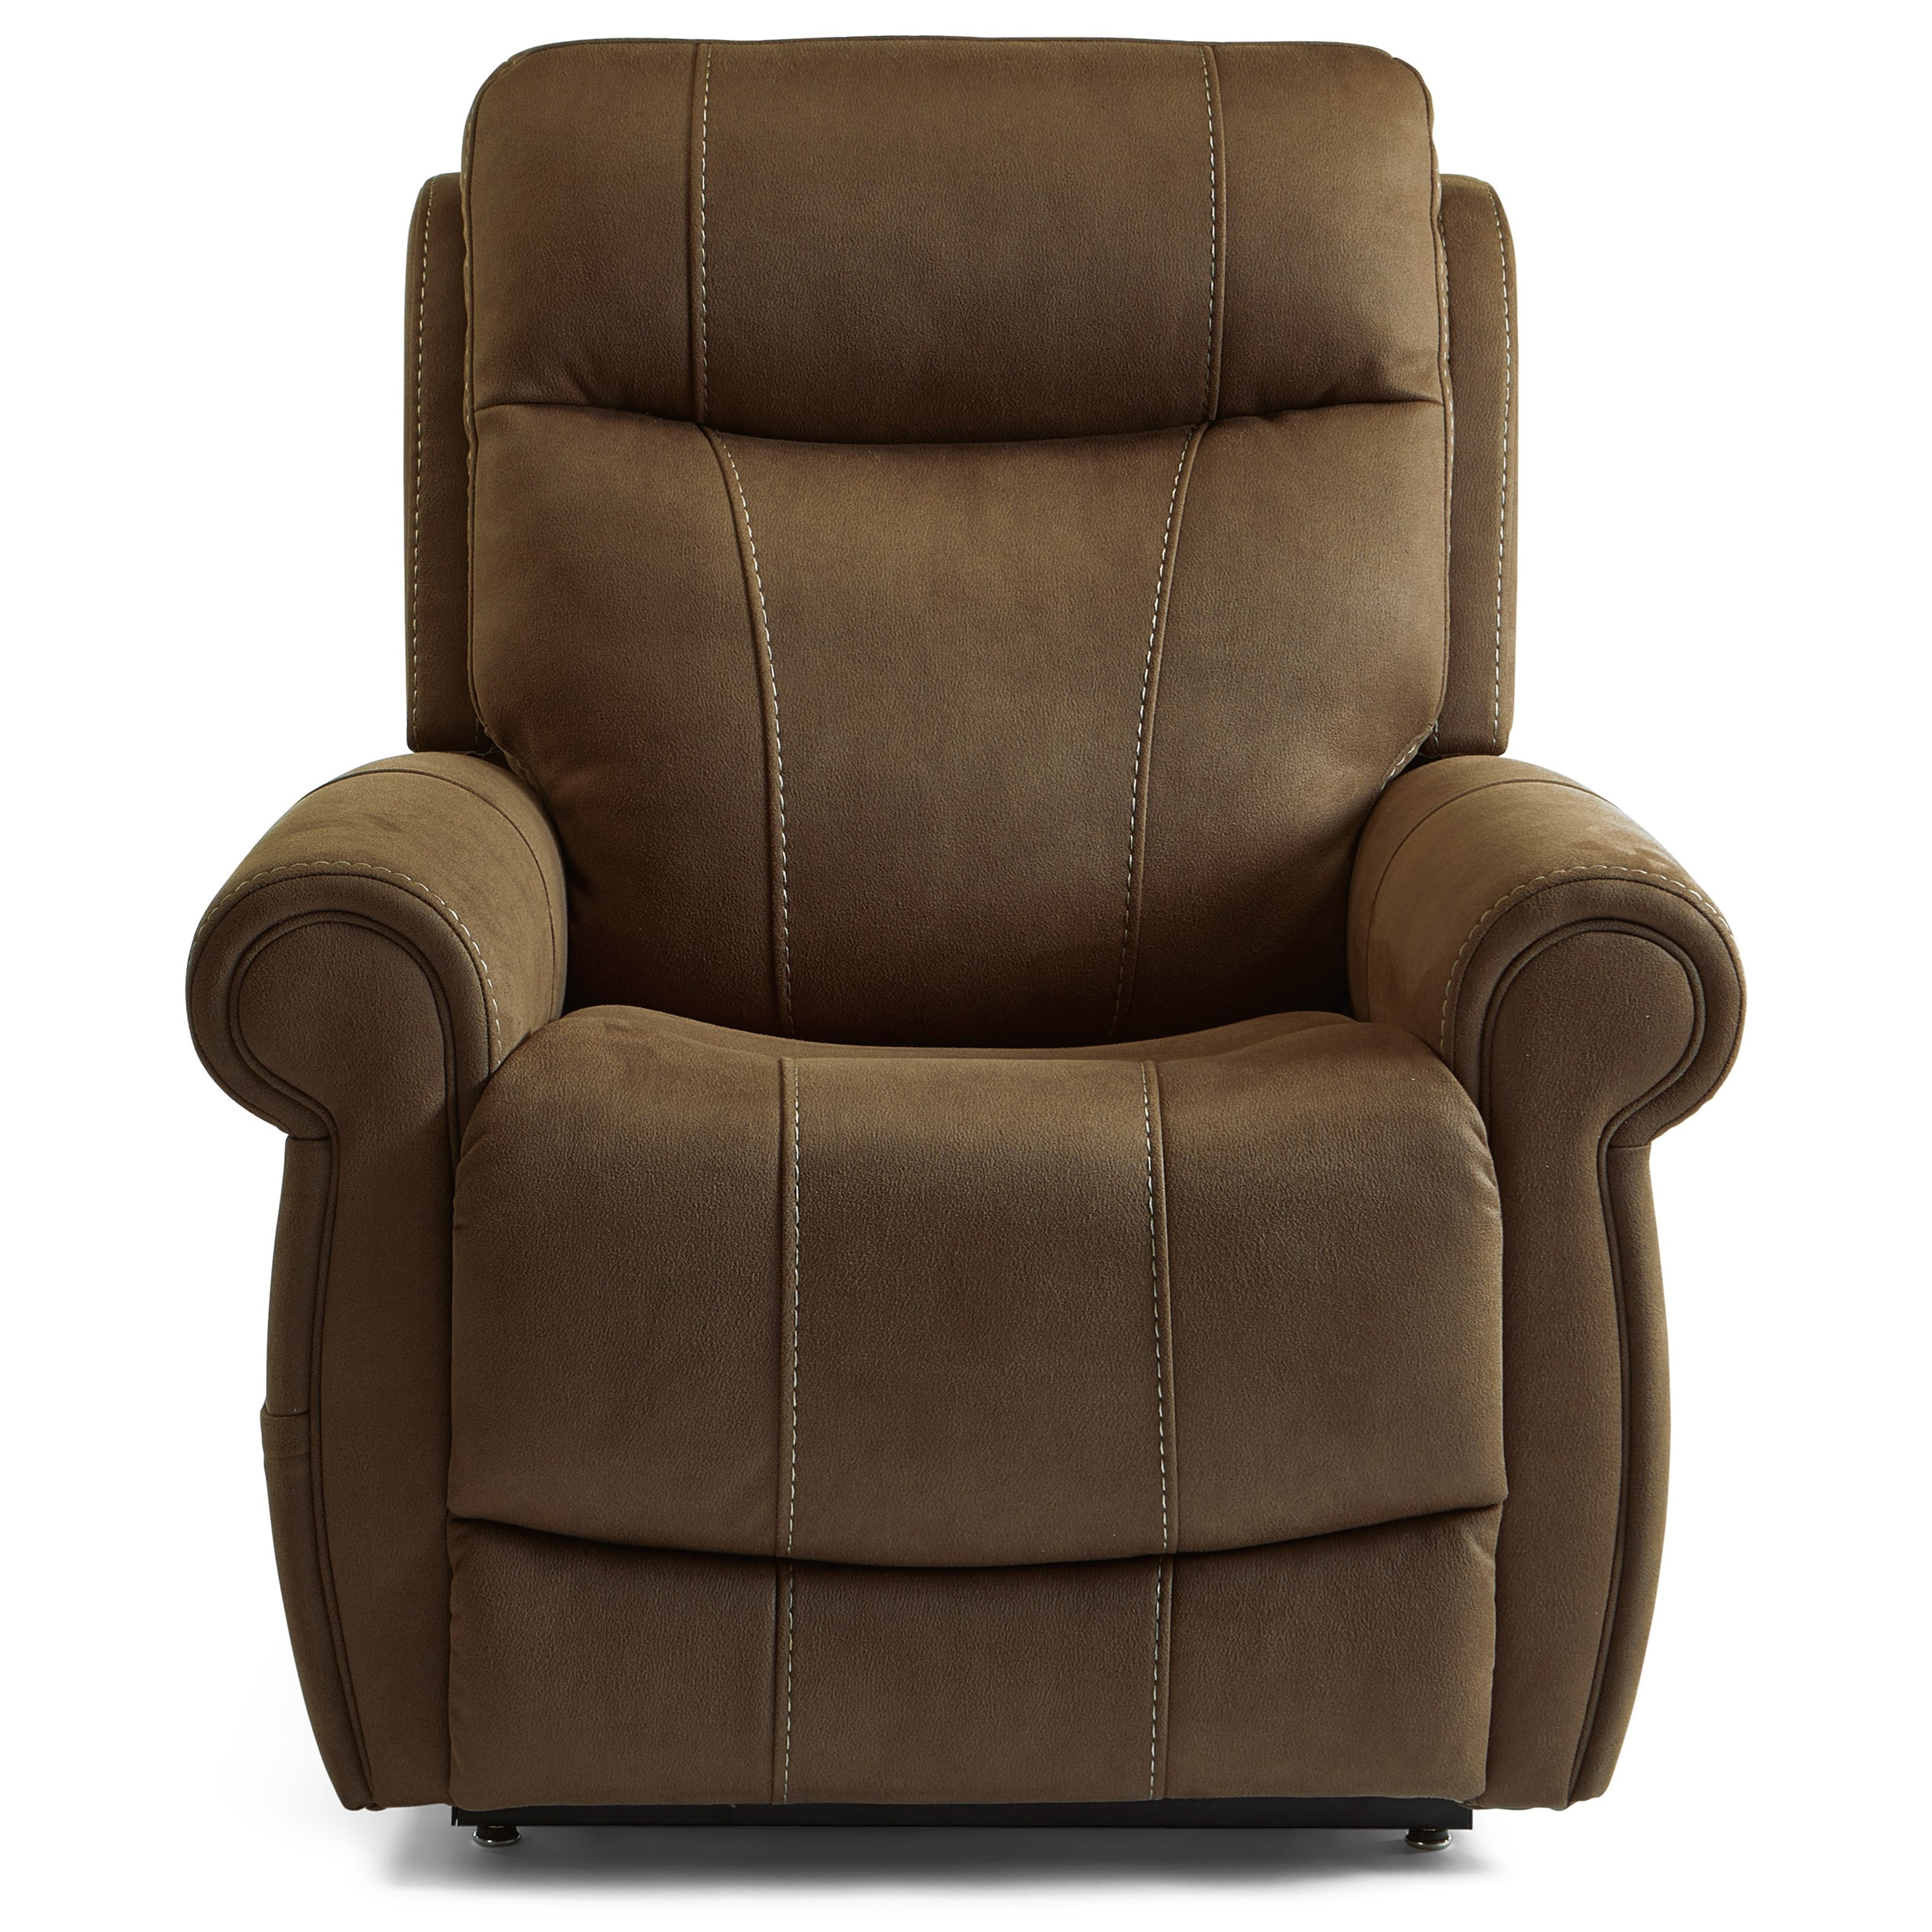 Latitudes - Stewart Power Lift Recliner w/ Pwr Hdrst & Pwr Lumb by Flexsteel at Walker's Furniture